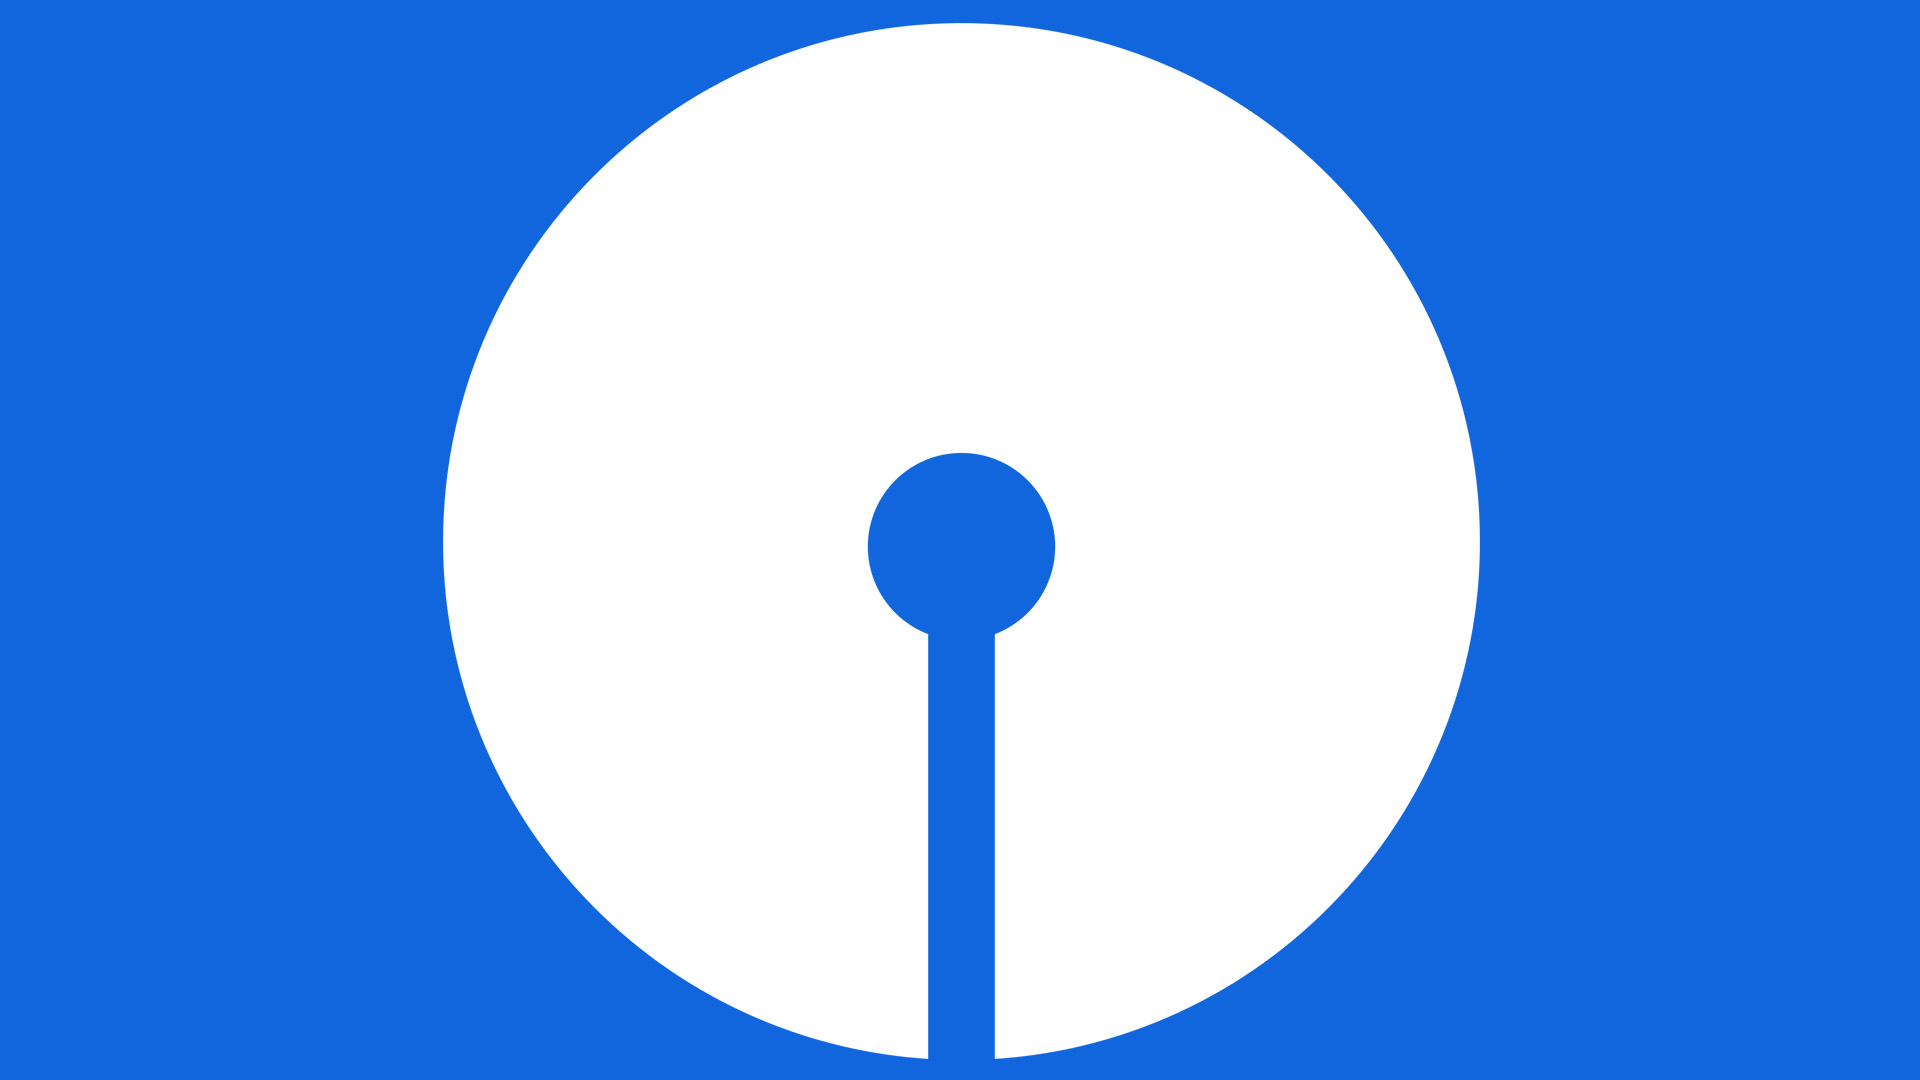 Meaning State Bank of India logo and symbol.